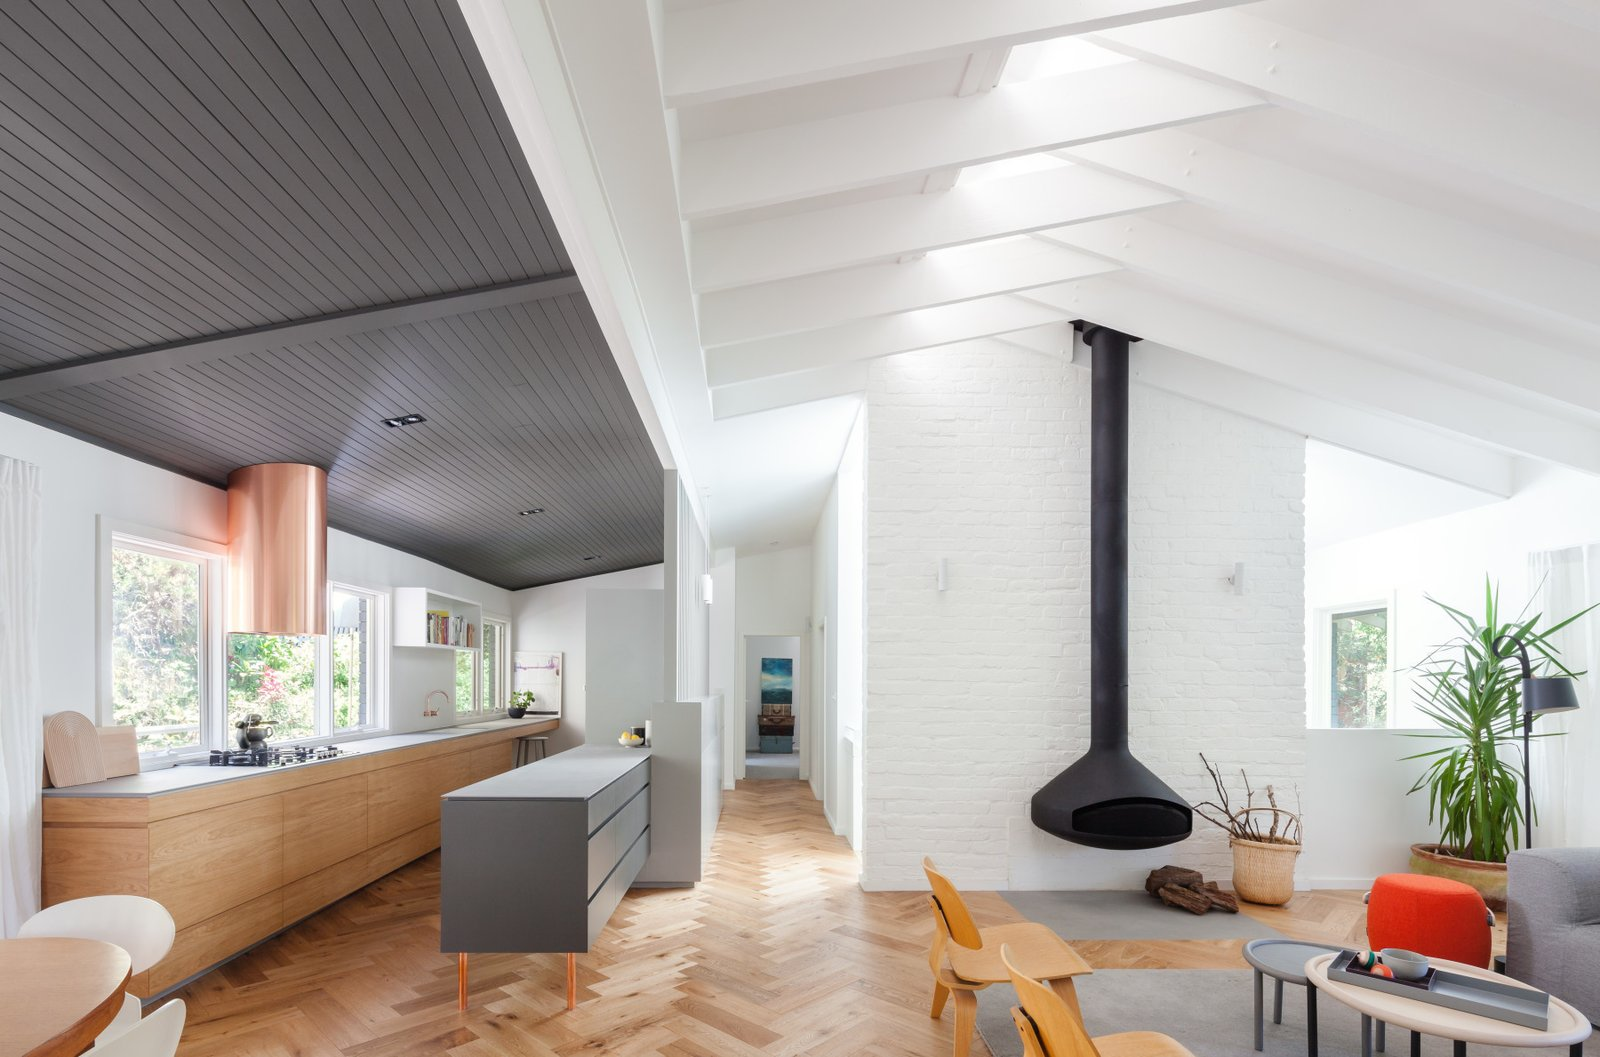 Photo 1 of 7 in Riverview by Nobbs Radford Architects